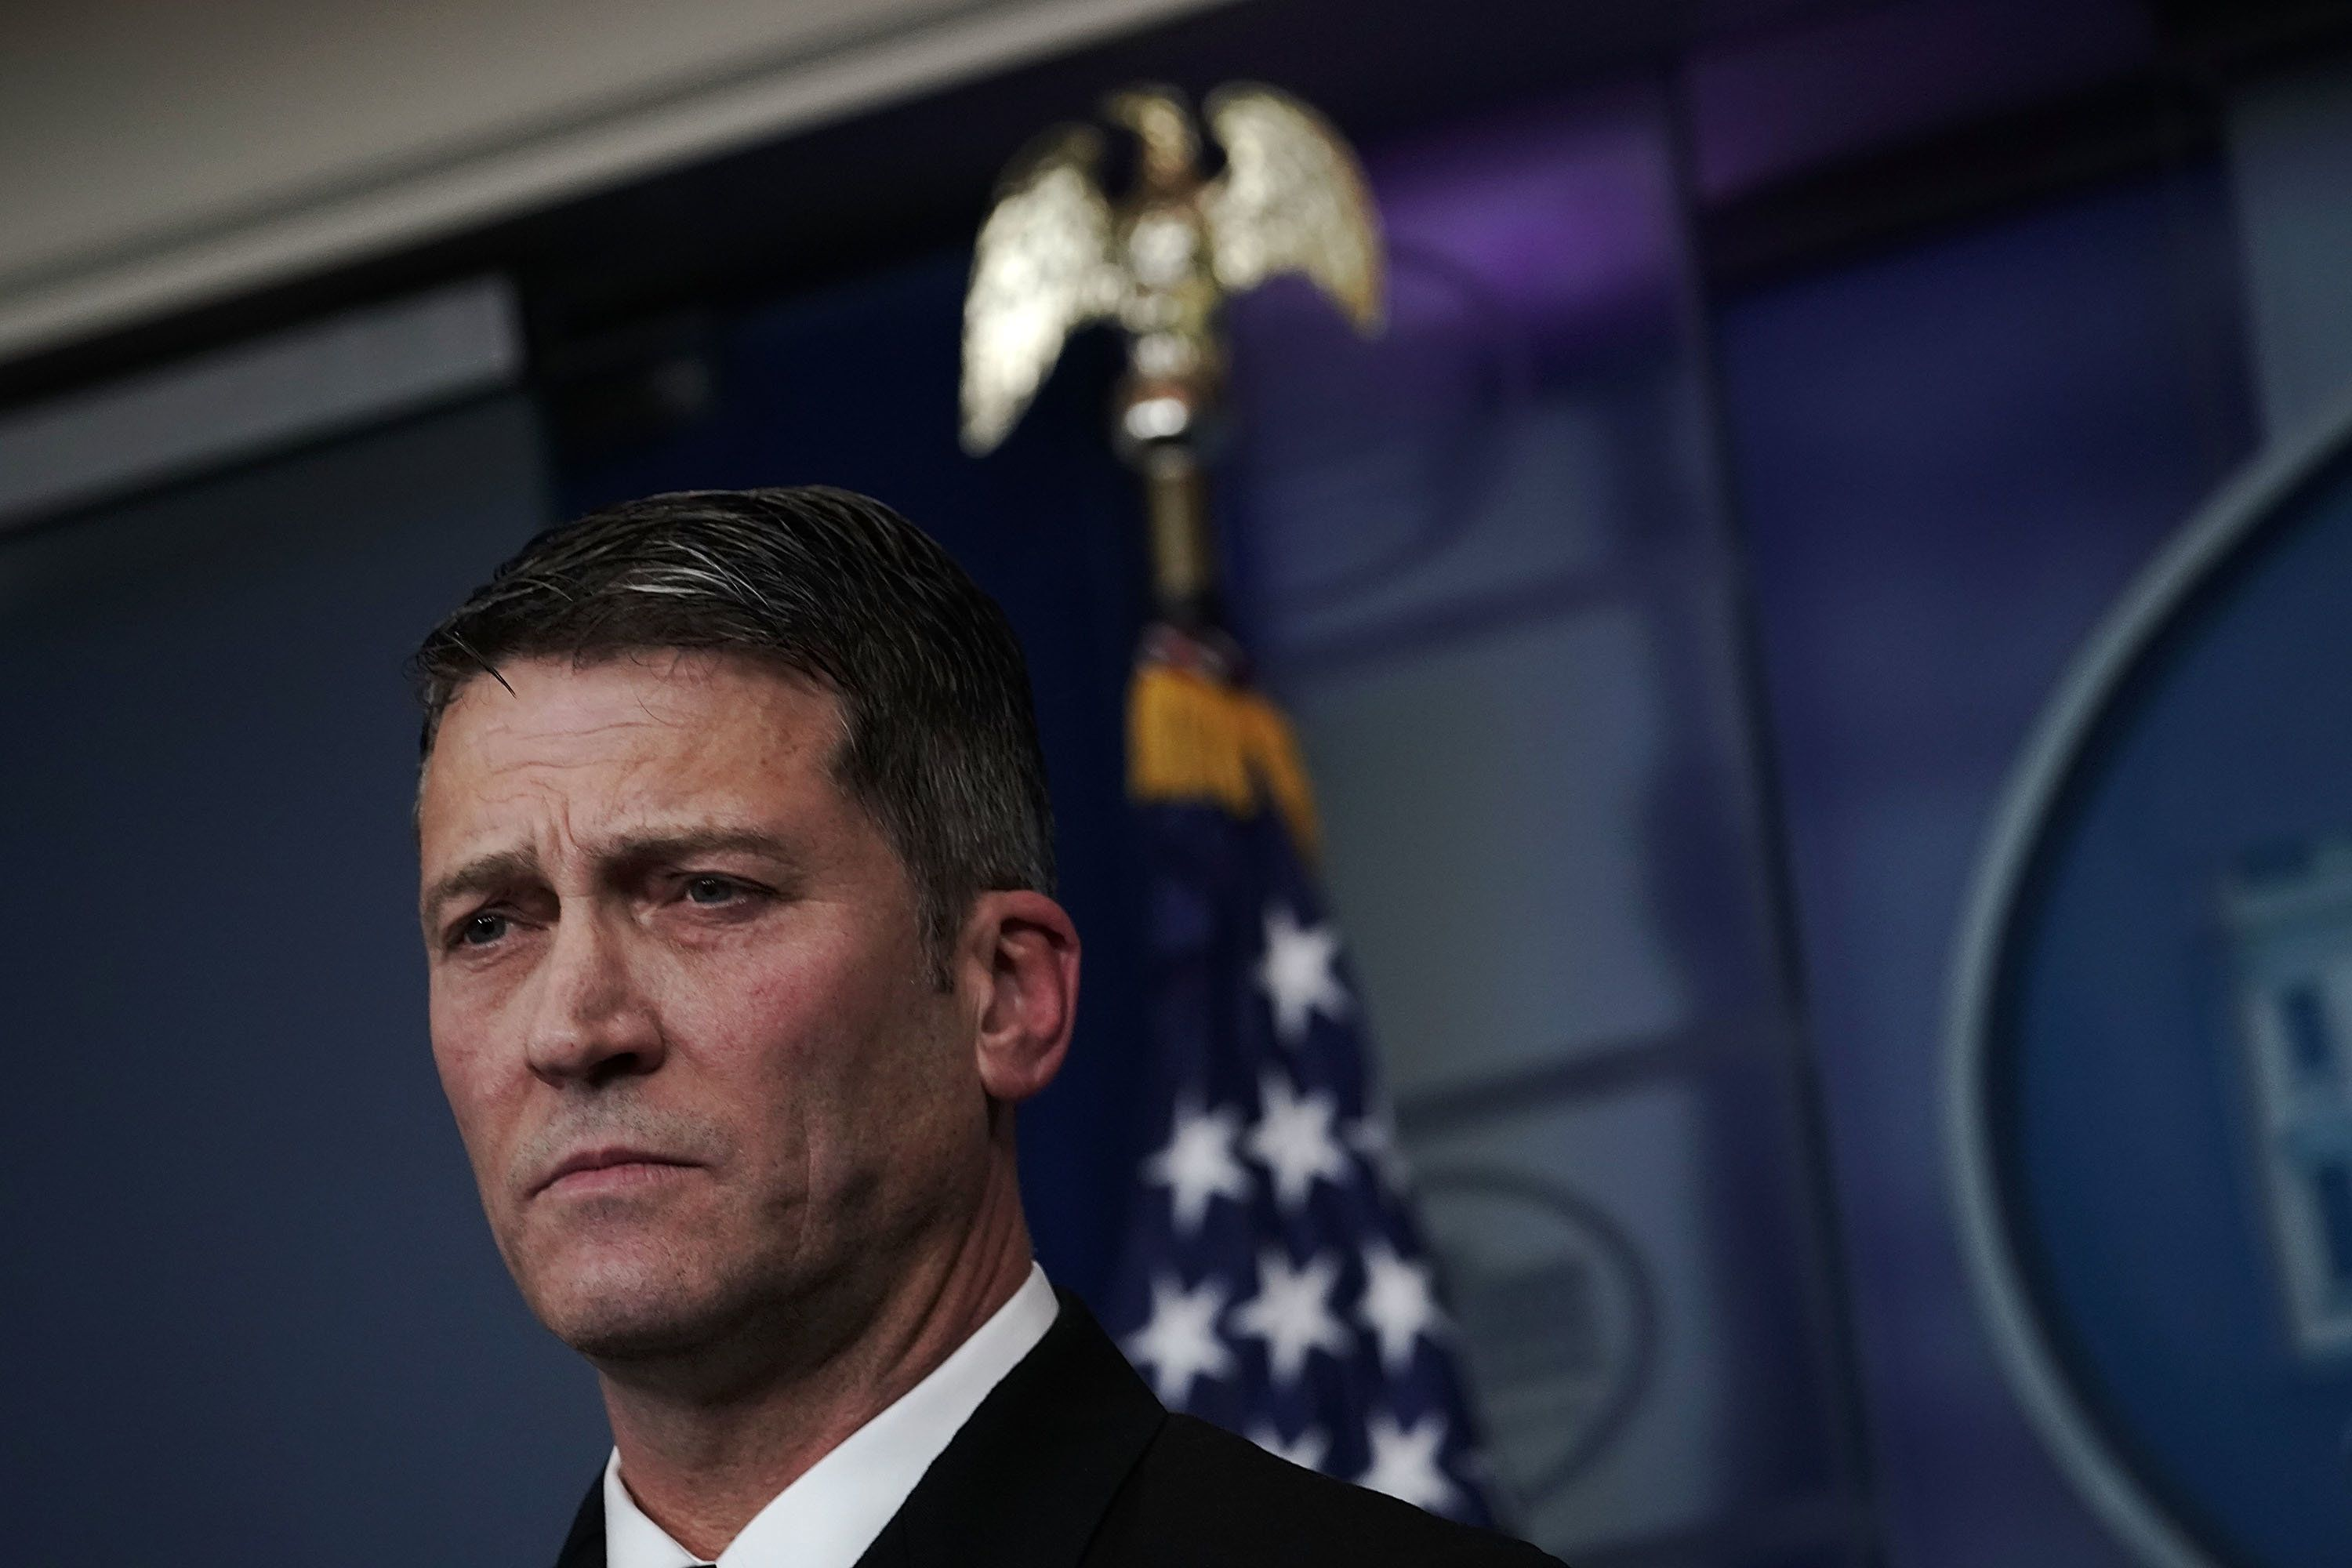 Ronny Jackson Will Not Continue to be Trump's Doctor